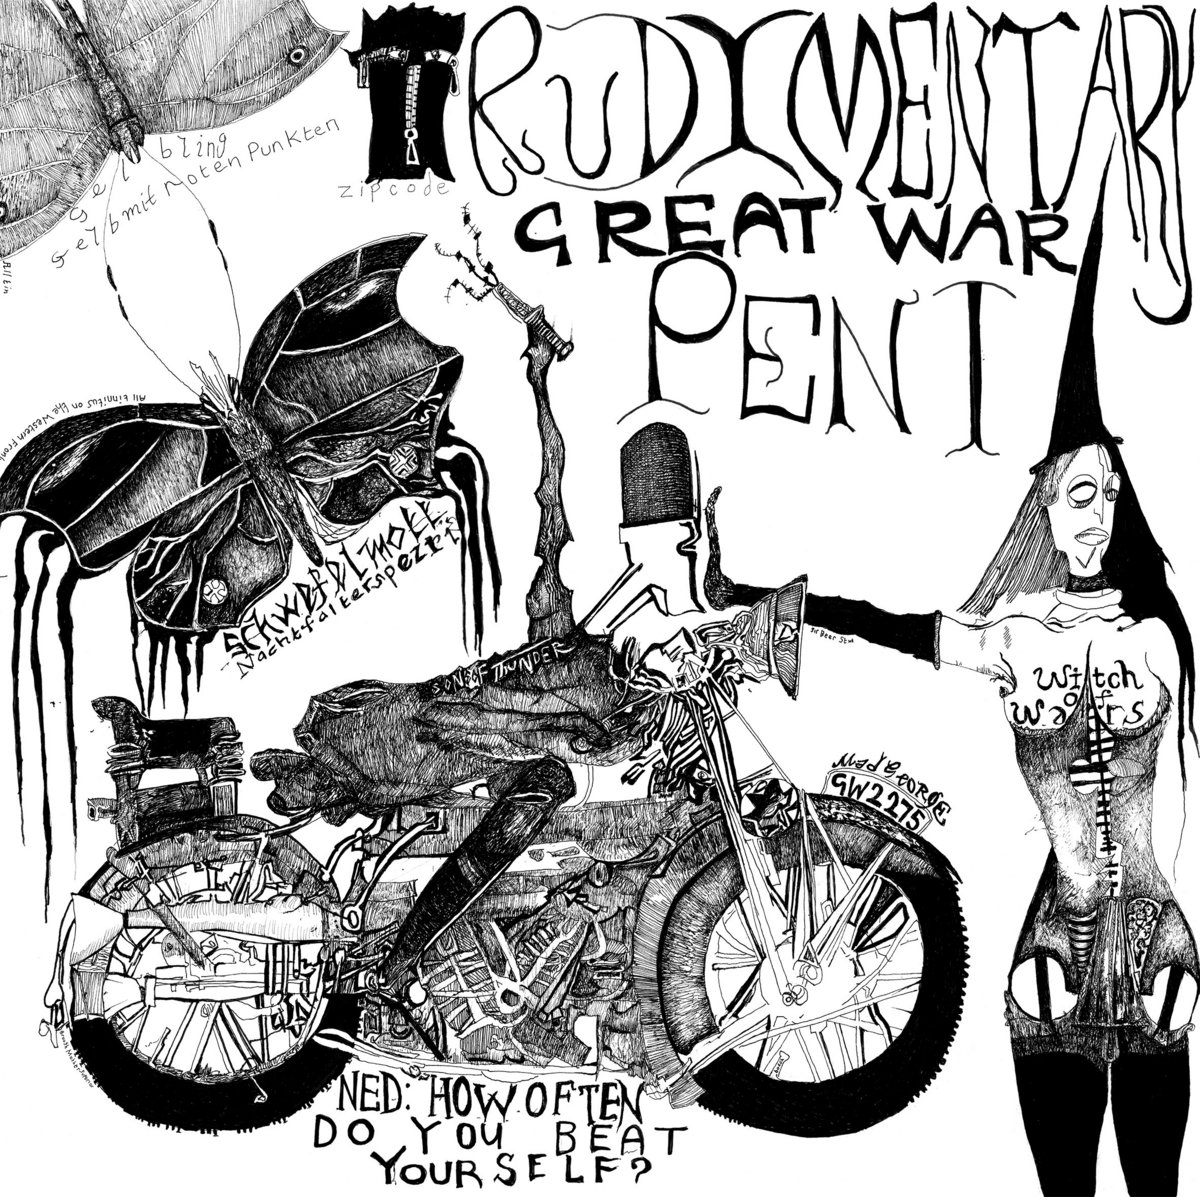 Rudimentary Peni – Great War